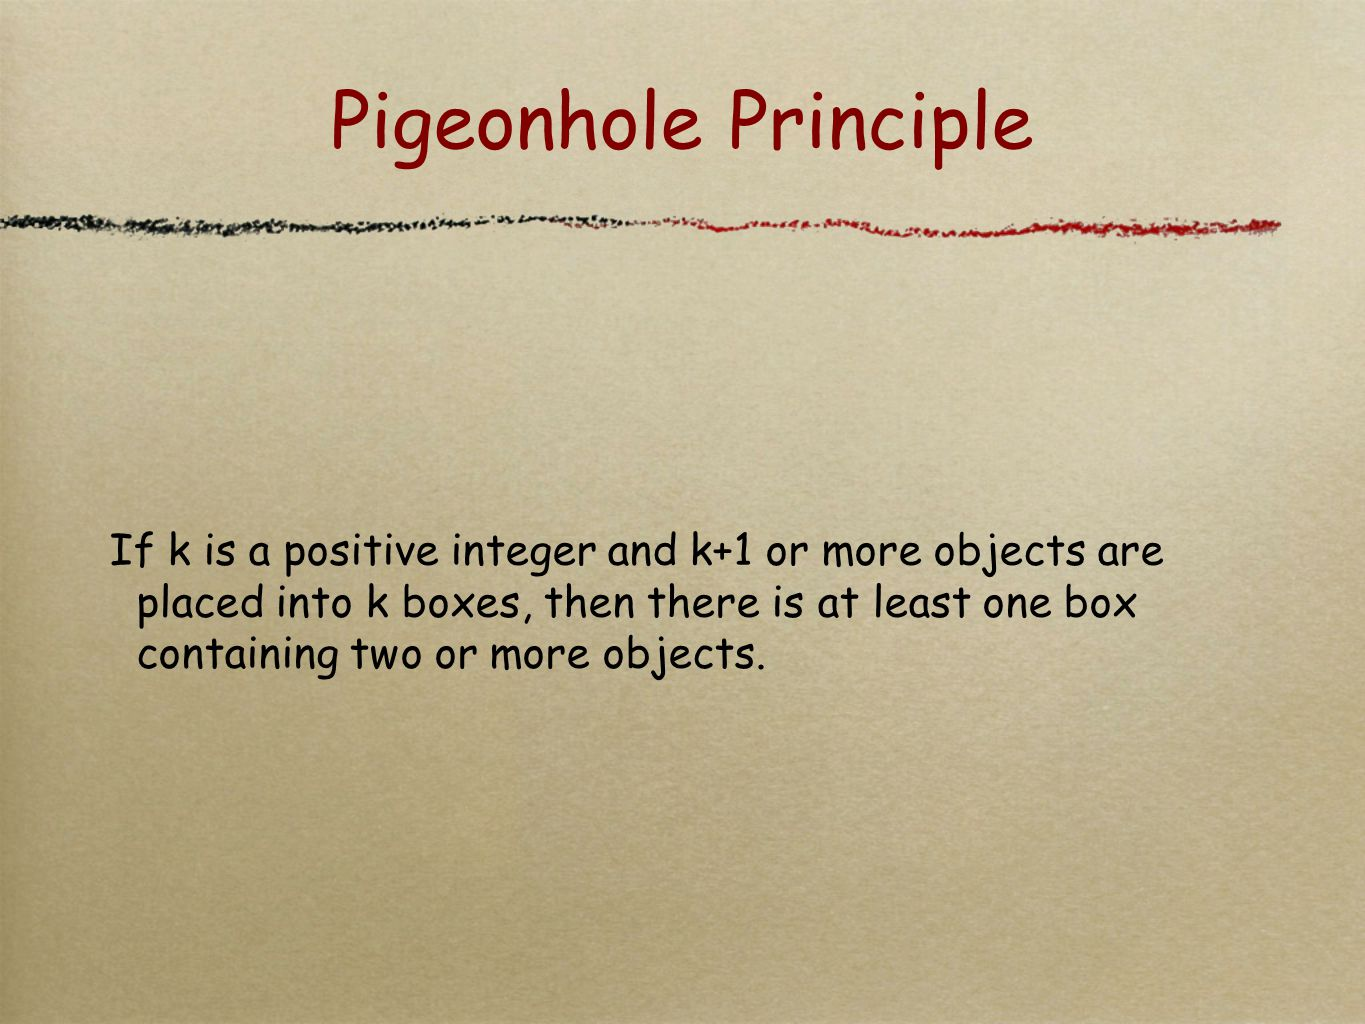 Pigeonhole Principle If k is a positive integer and k+1 or more objects are placed into k boxes, then there is at least one box containing two or more objects.